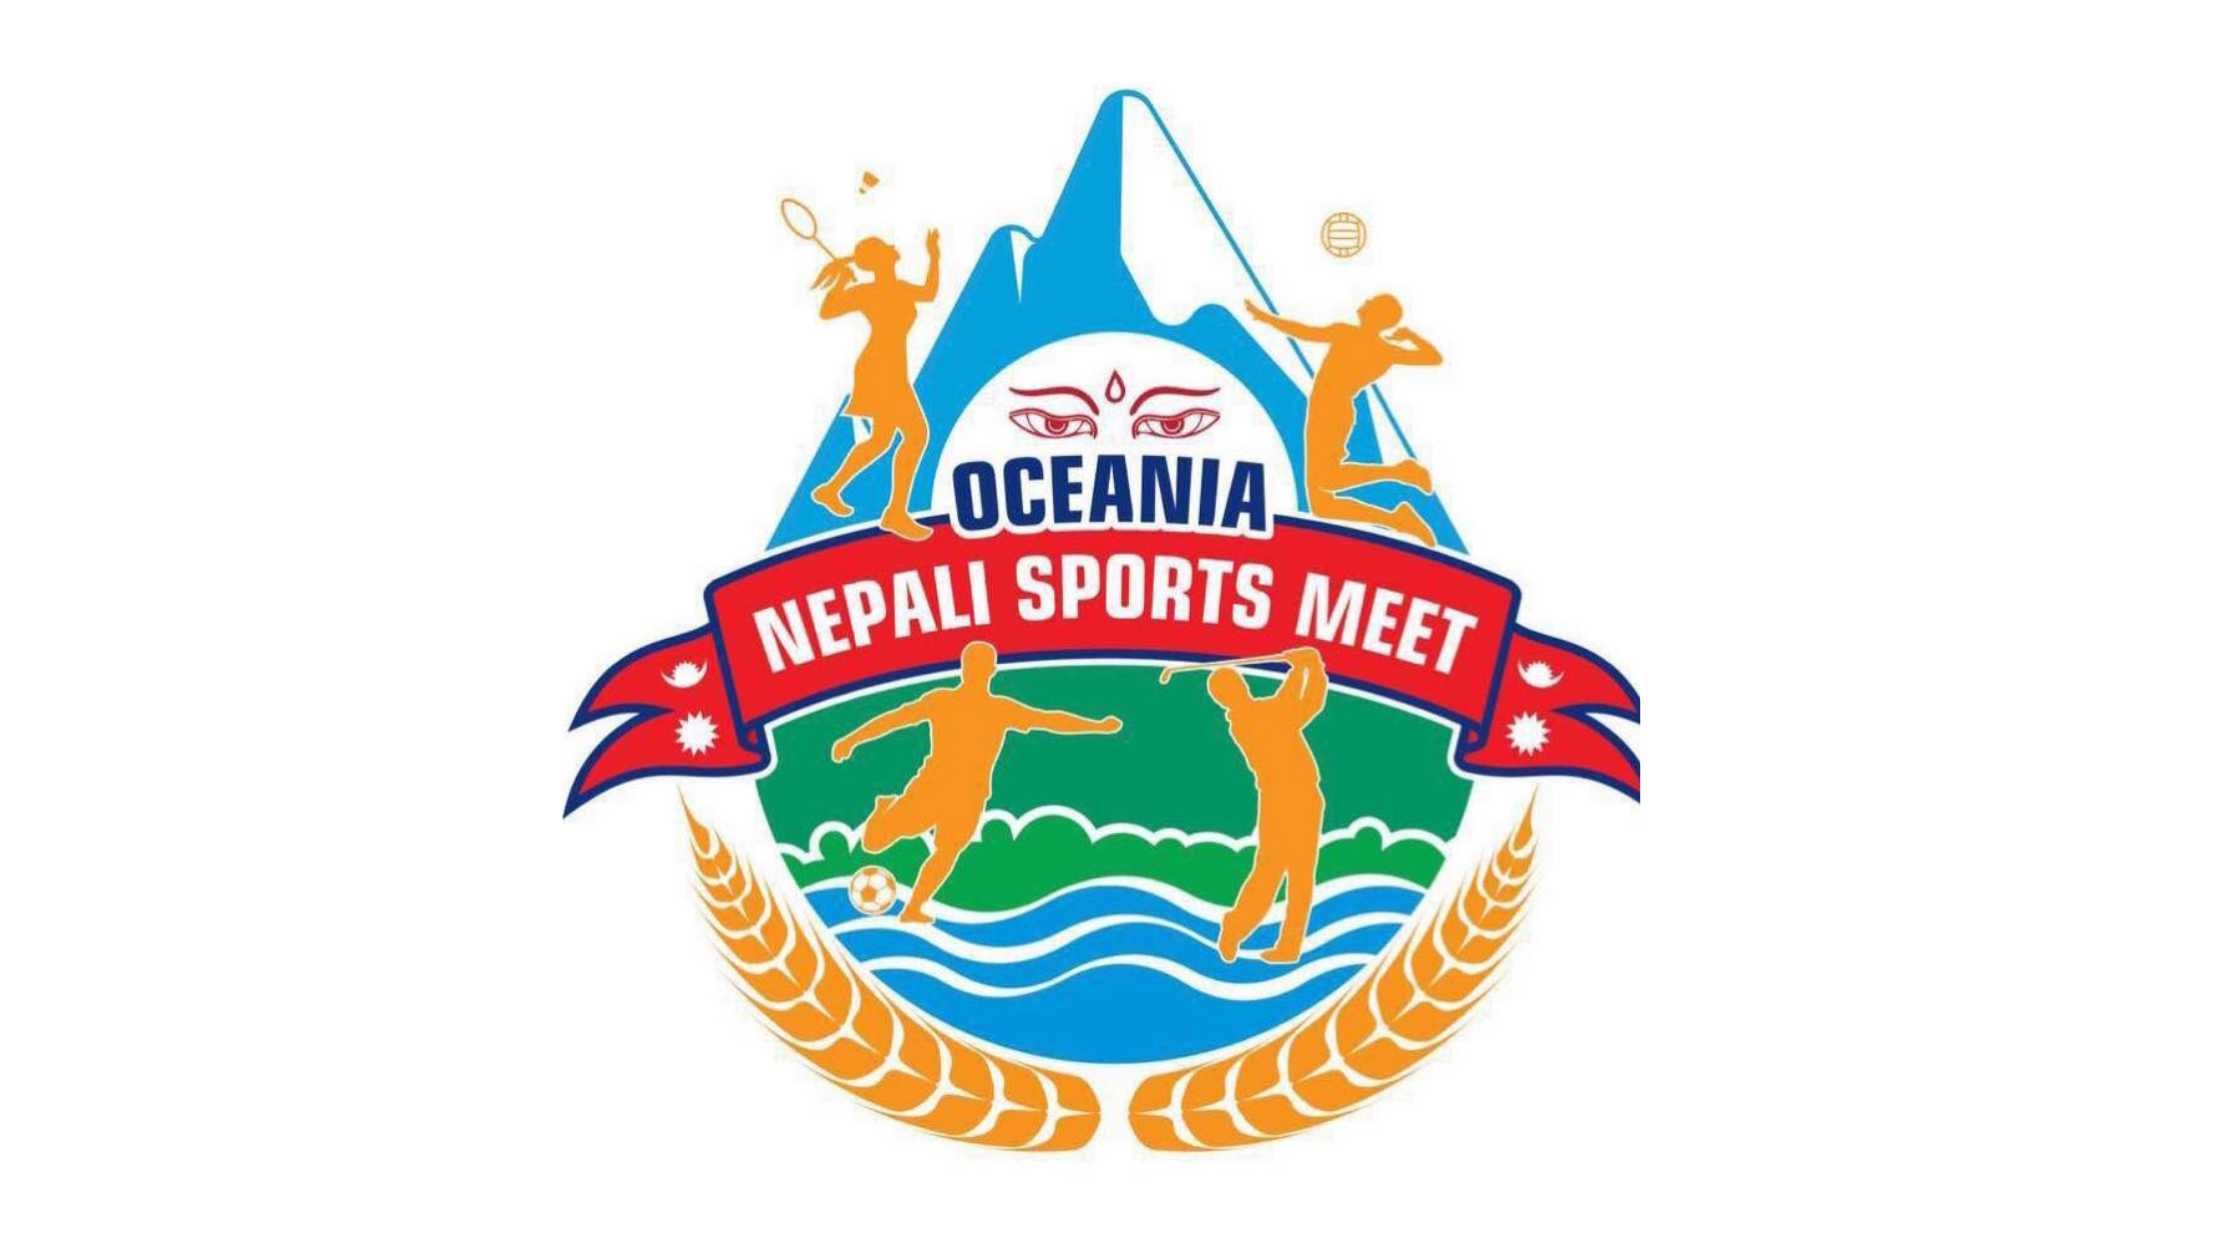 Oceania Nepali Sports Meet (ONSM)Elects Ashish Sapkota as the President: Fifth Edition in 2022